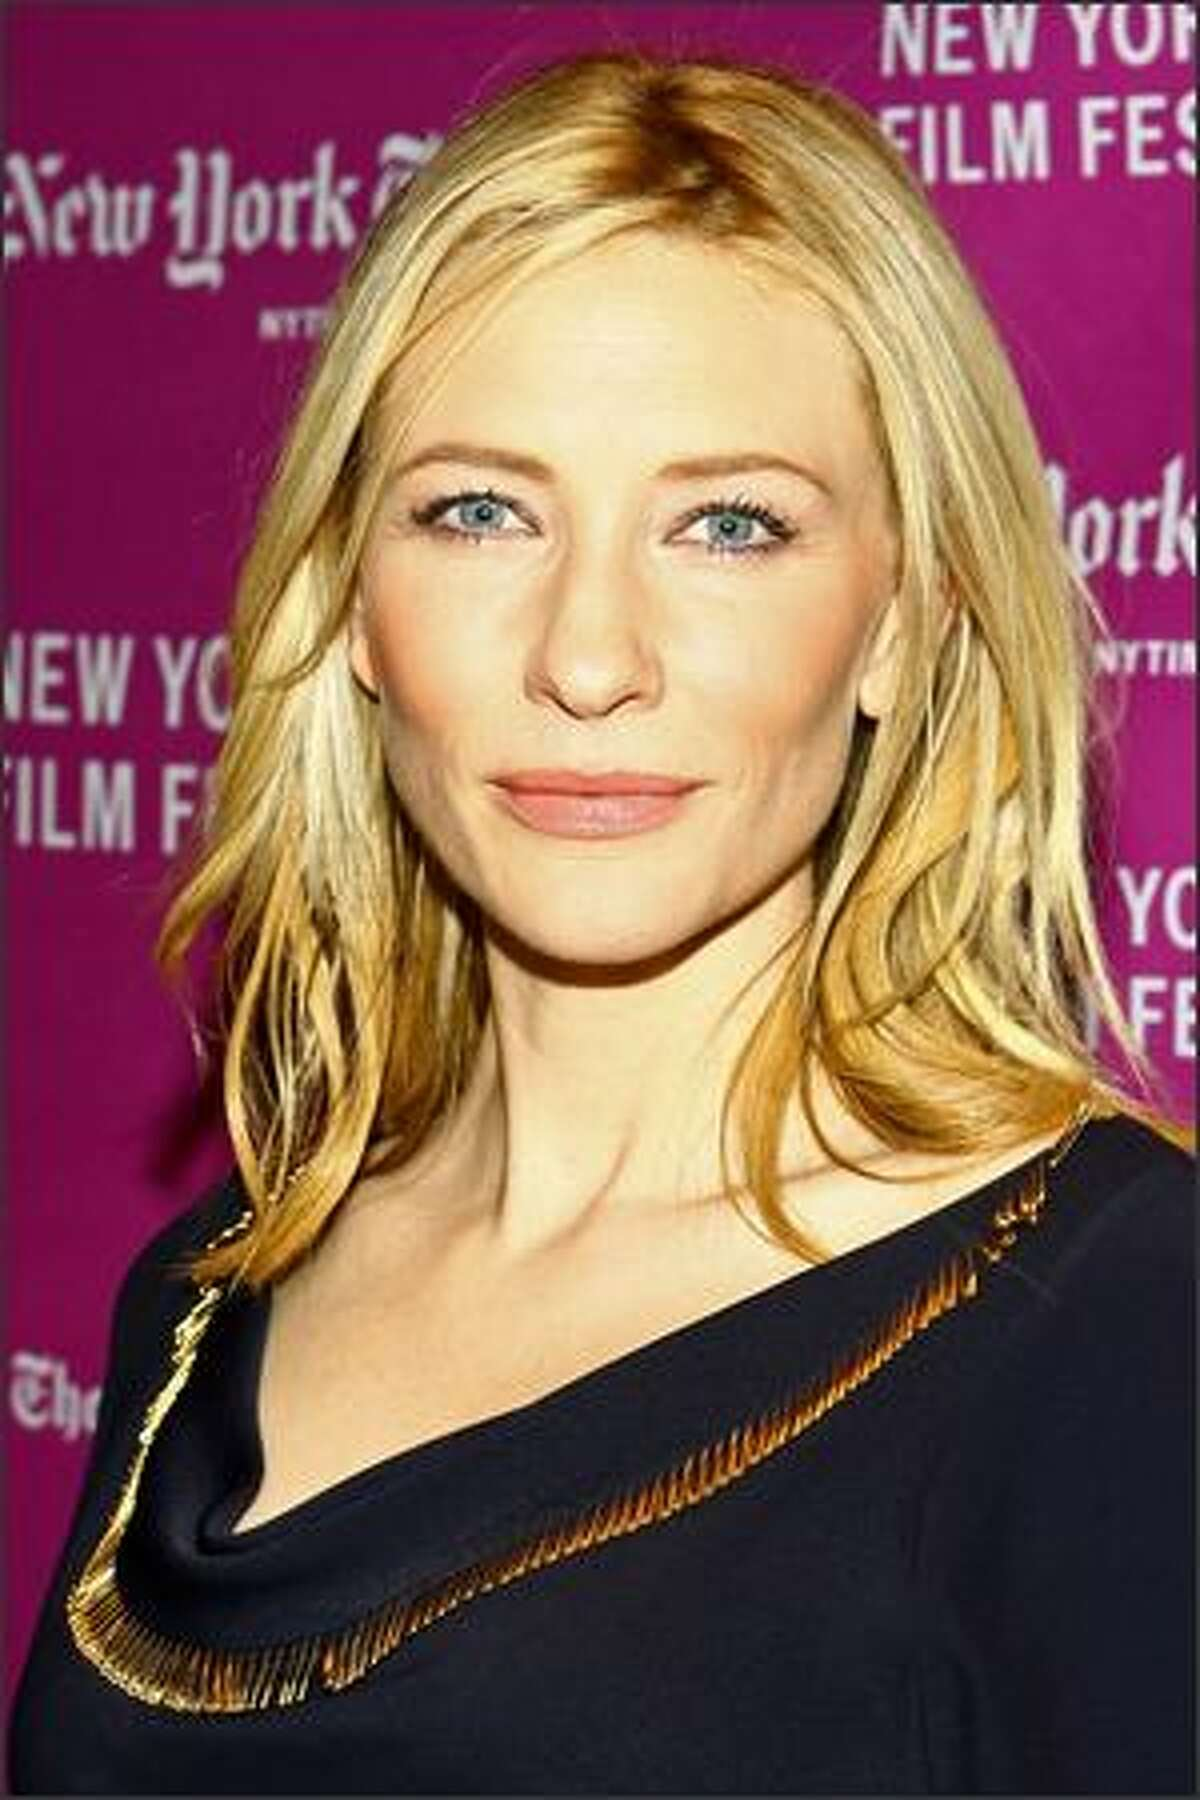 """Actress Cate Blanchett attends the New York Film Festival screening of """"I'm Not There"""" at Frederick P. Rose Hall October 4, 2007 in New York City."""